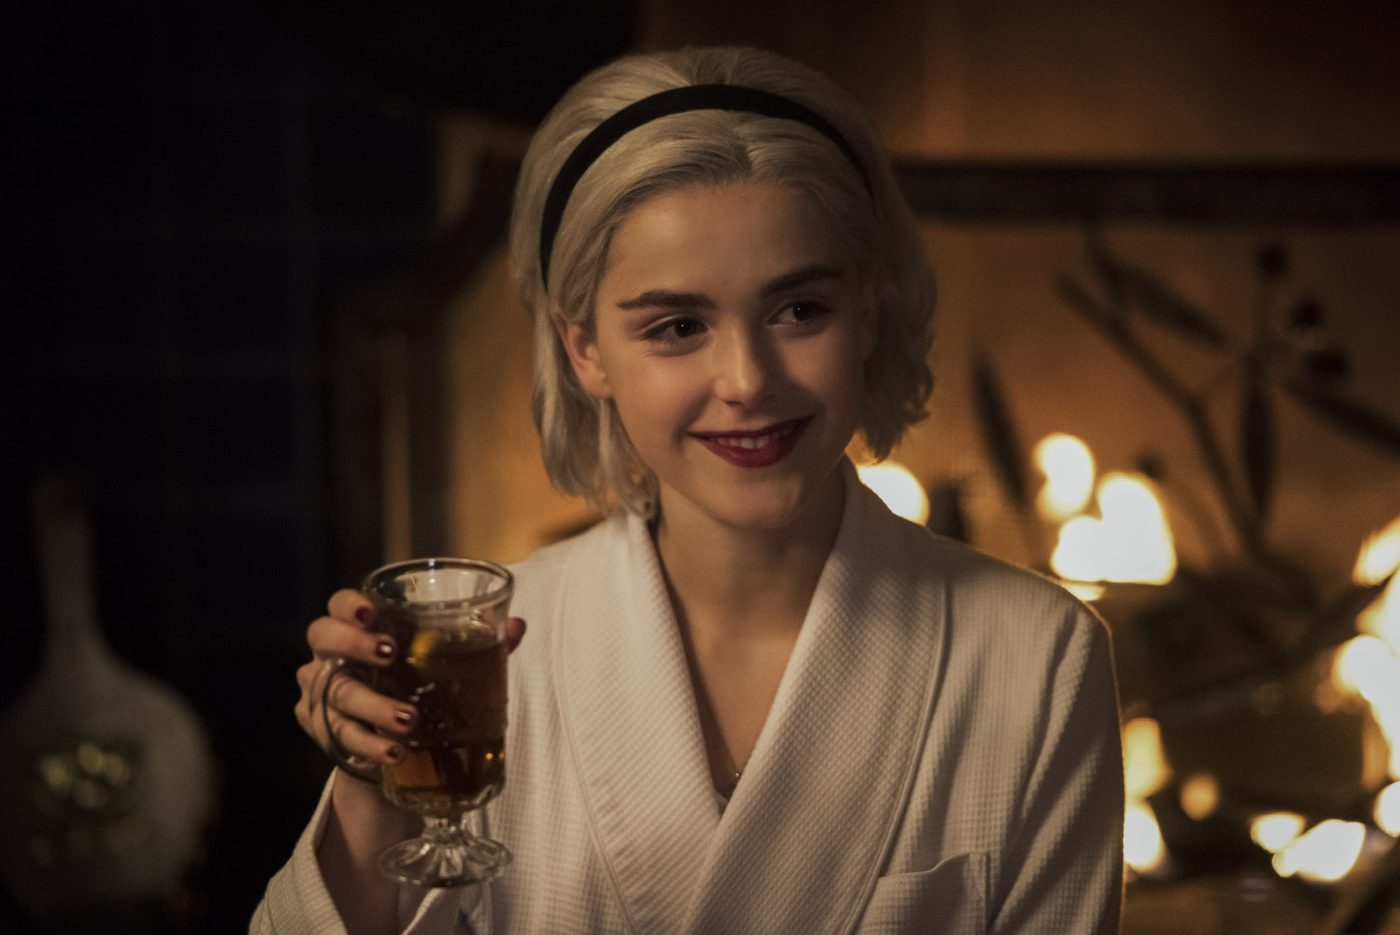 Kiernan Shipka as Sabrina in Netflix's Chilling Adventures of Sabrina: A Midwinter's Tale